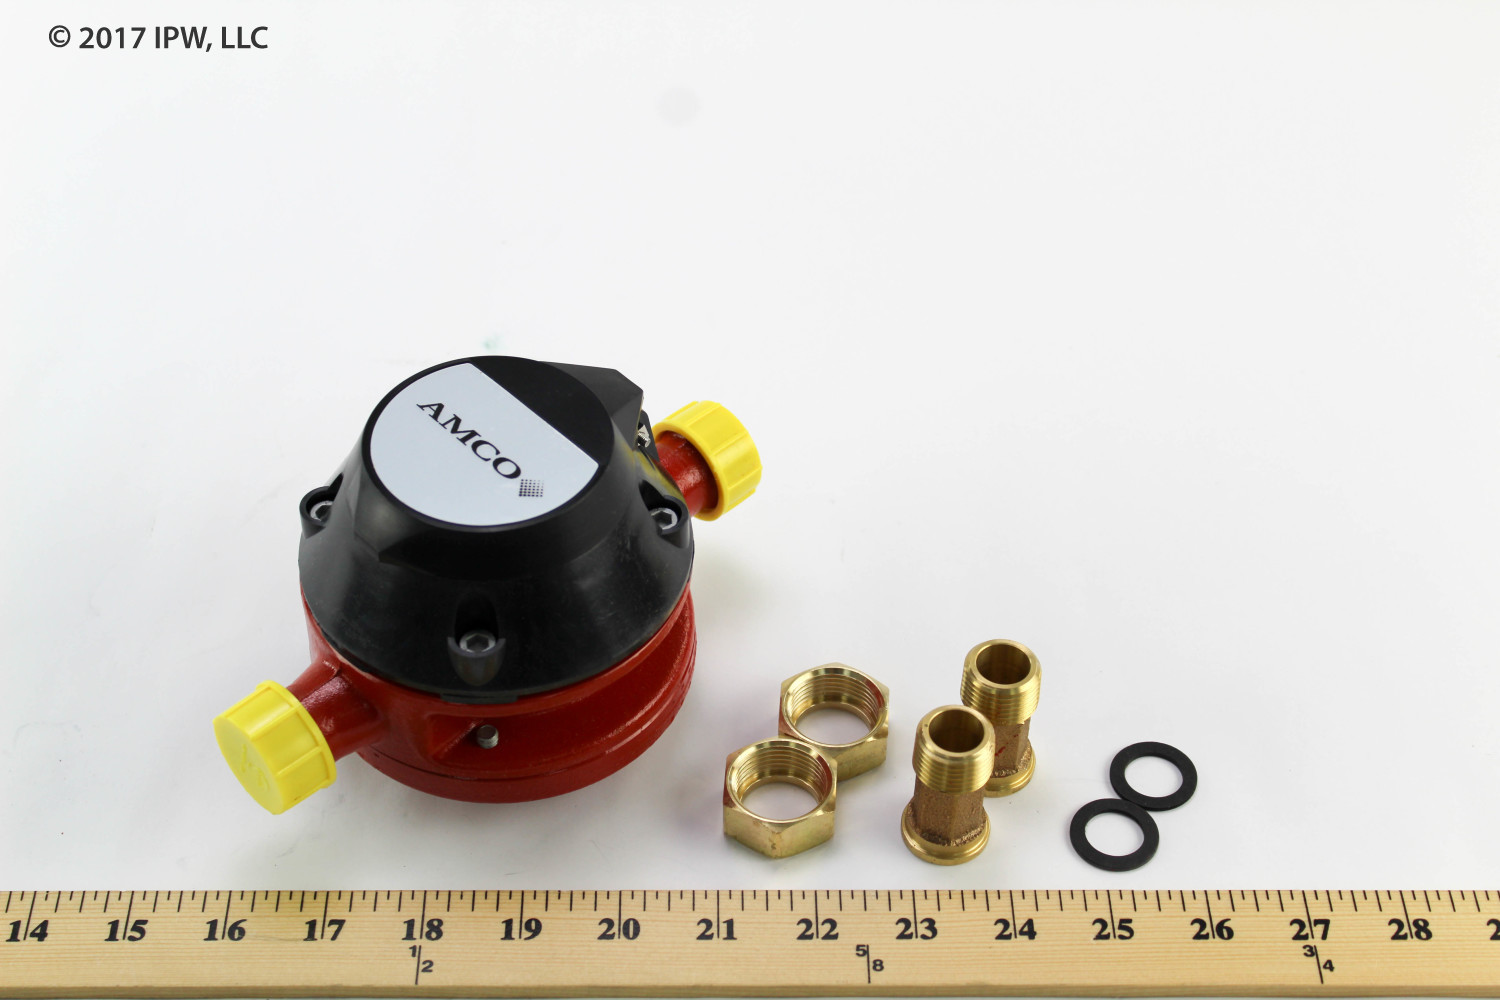 Honeywell Elster AMCO Water Meters OIL92139 1/2